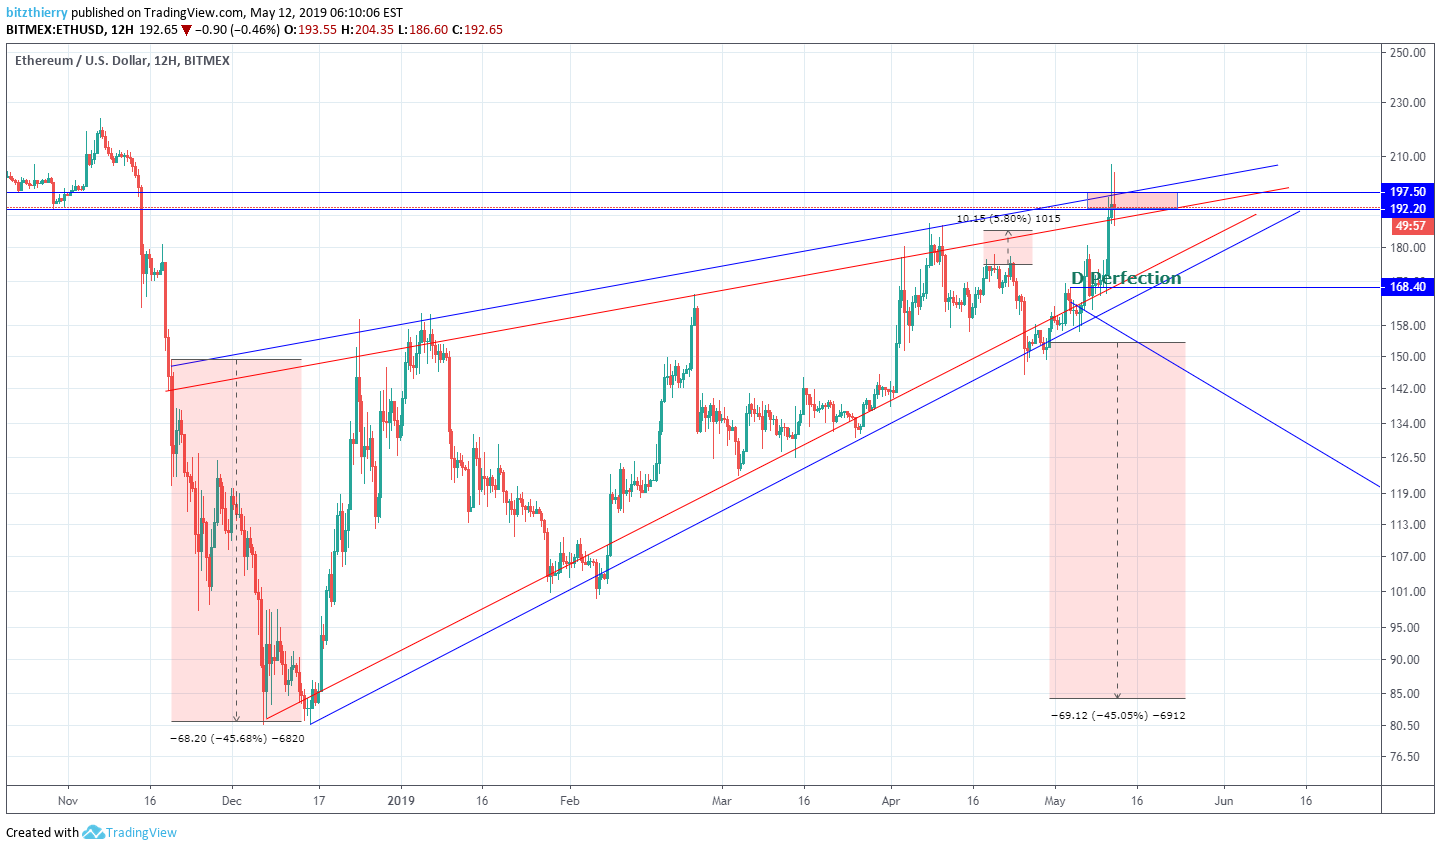 ETHUSD: Be careful with your Ethereum Babys - Rising wedge